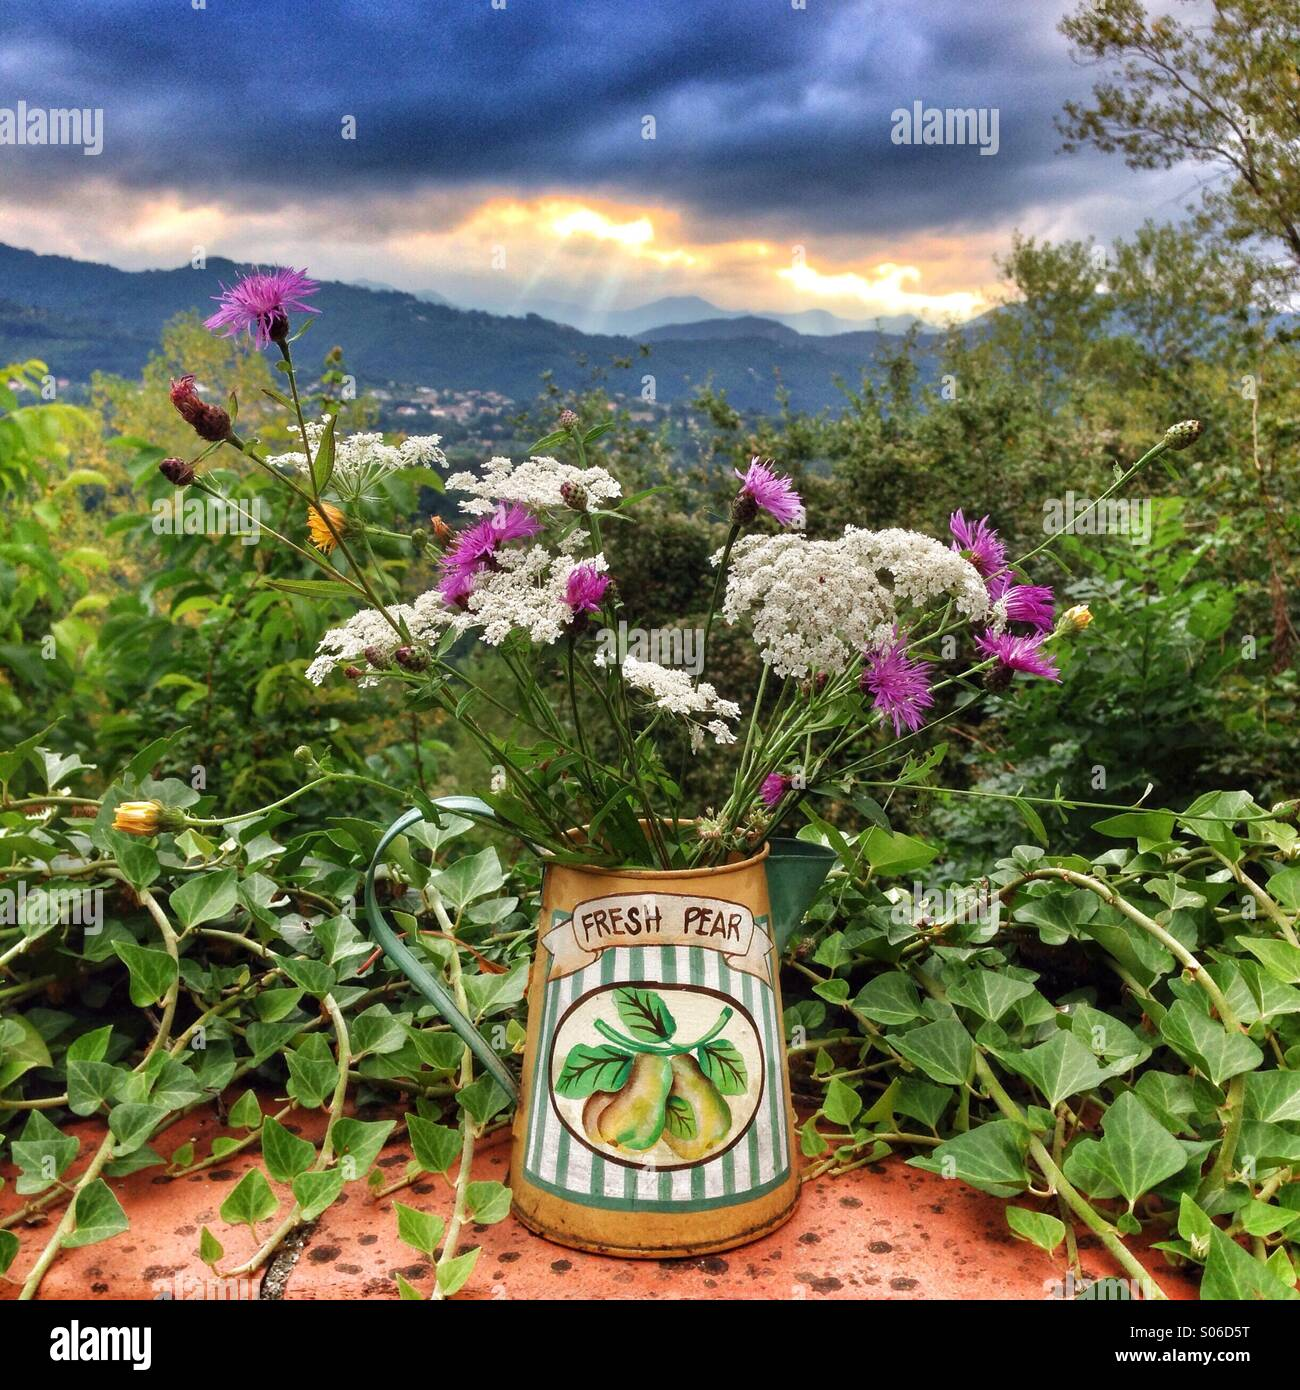 Vase of flowers on terrace as storm approaches in the Garfagnana, Tuscany, Italy Stock Photo